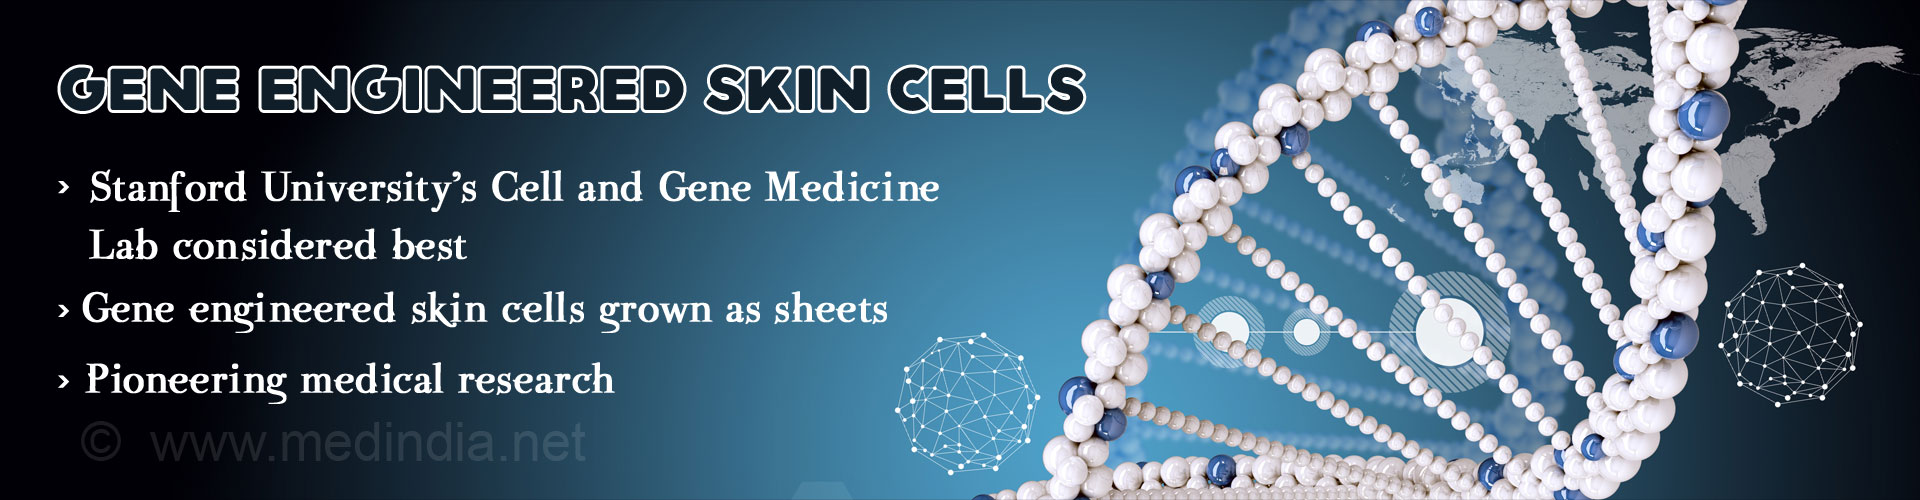 Manufacturing Gene-Engineered Skin Cells at Stanford - Promise to Cure